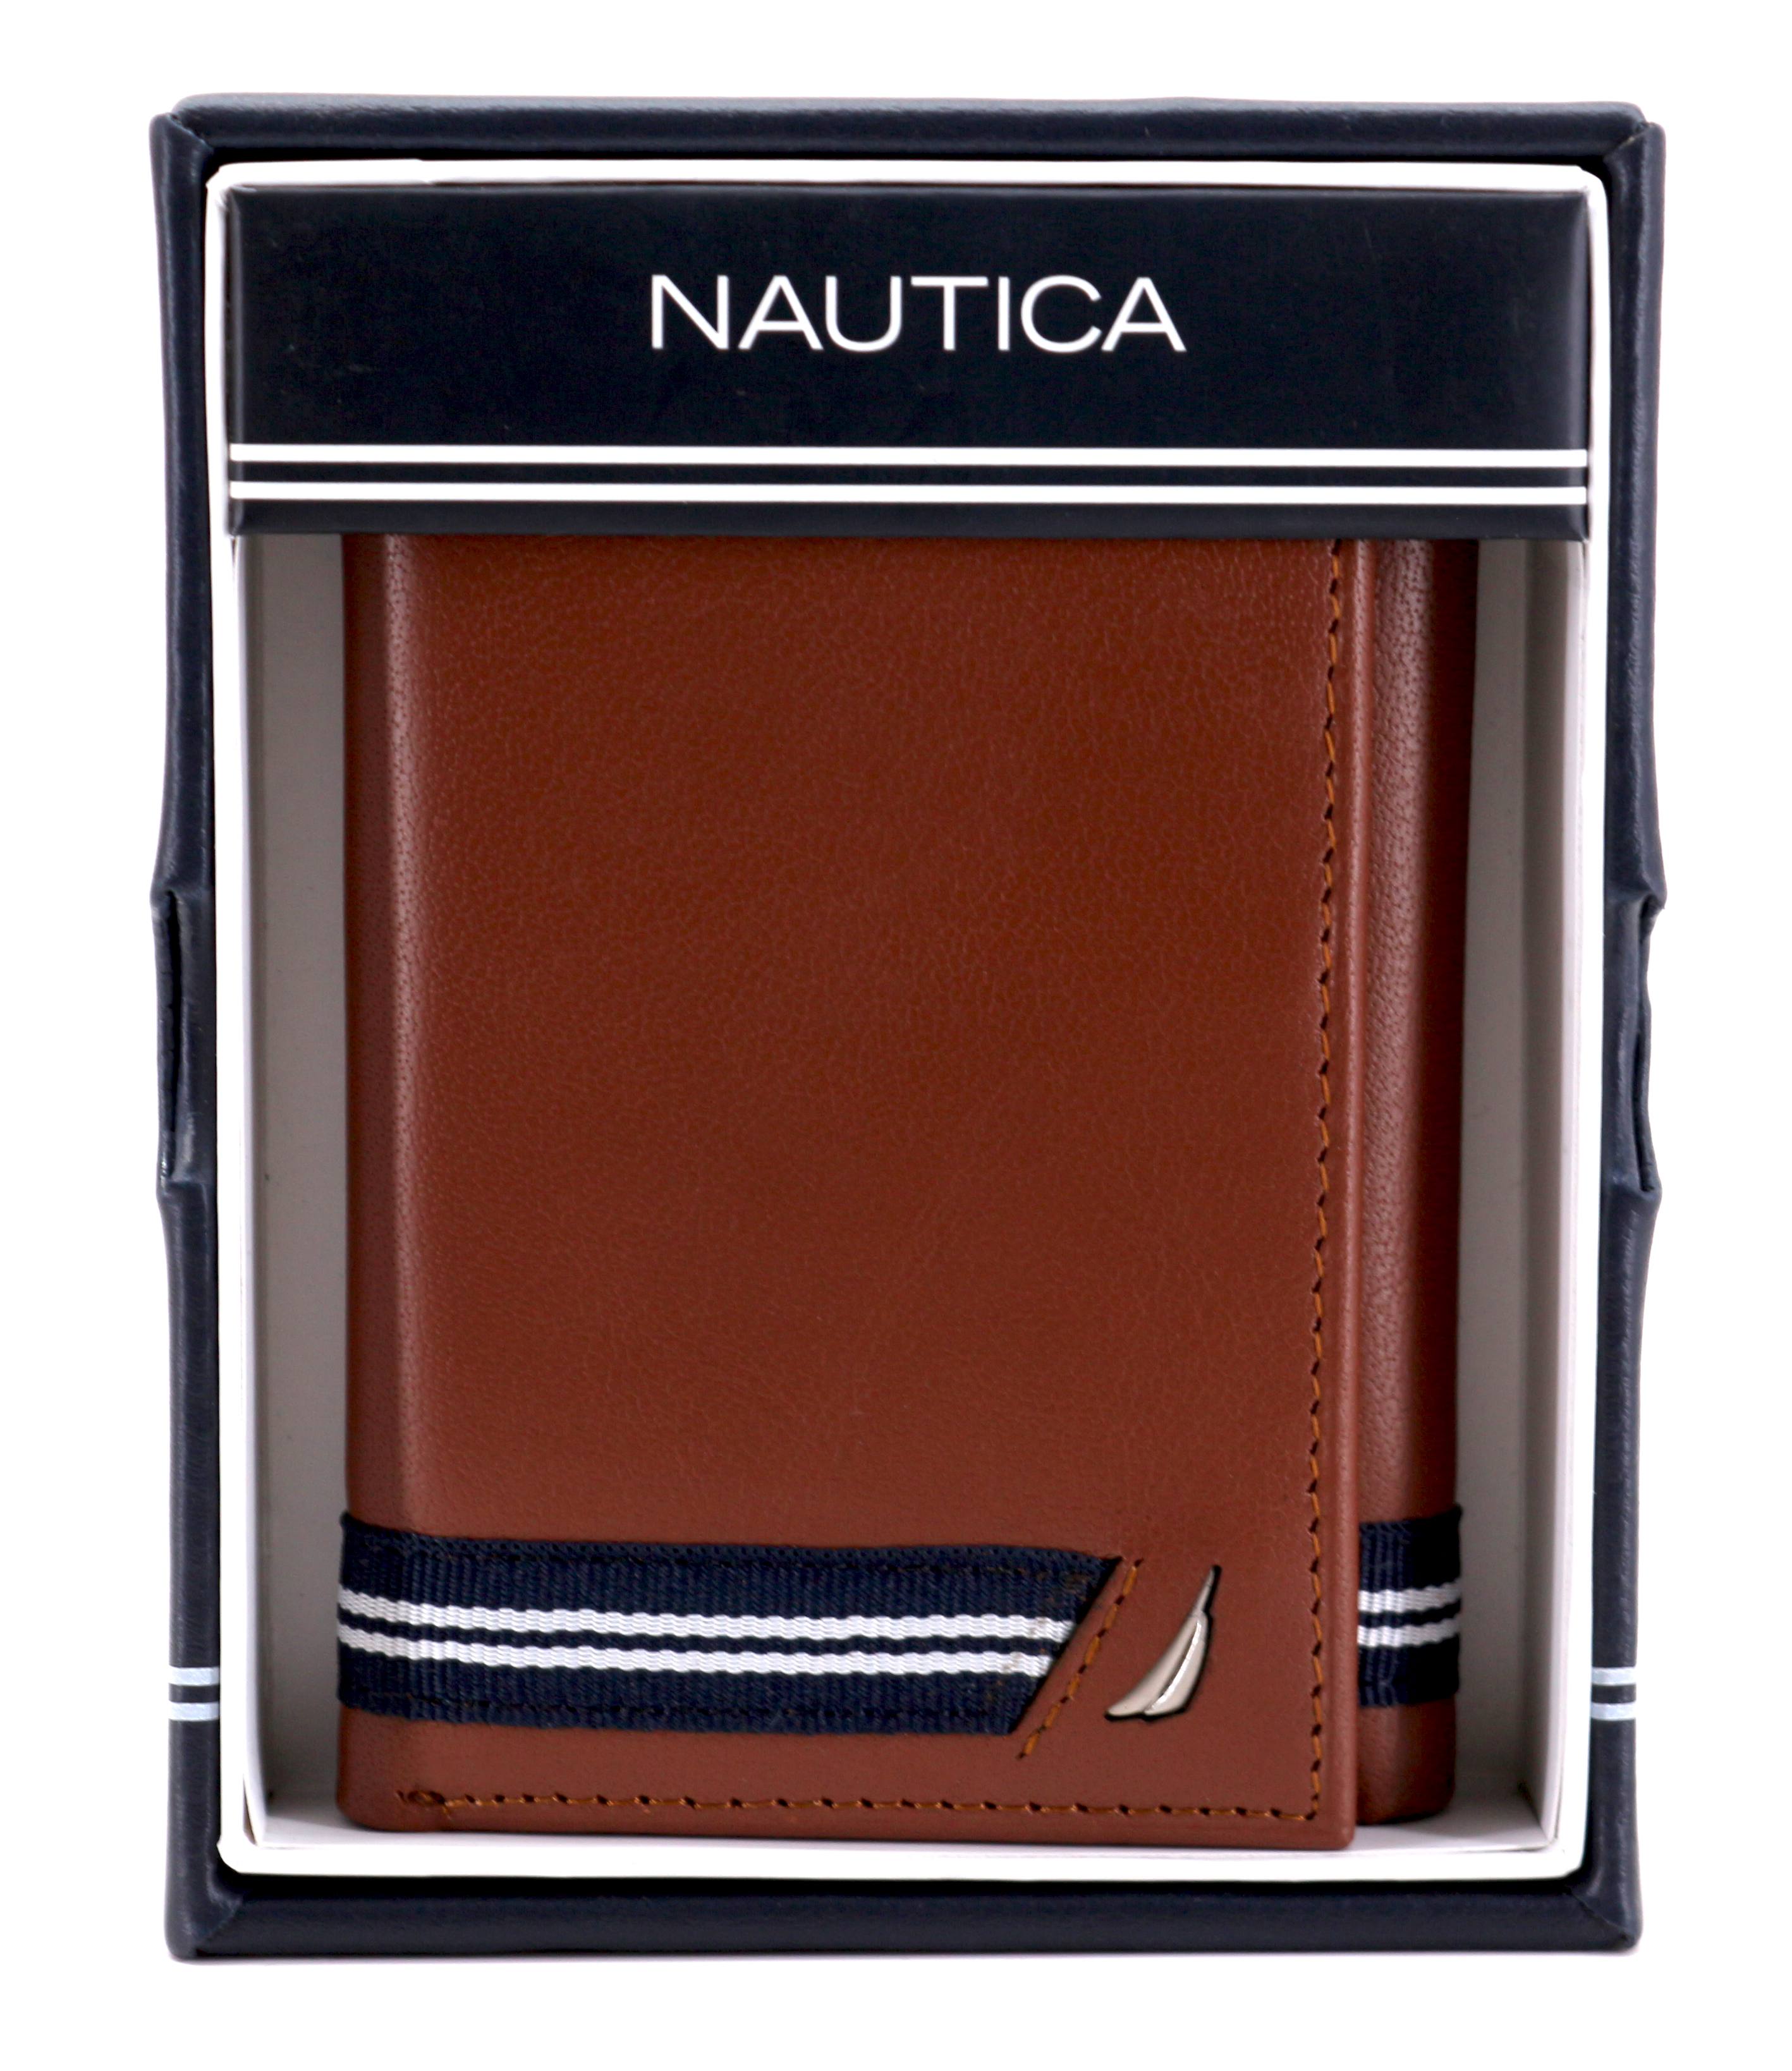 Nautica-Men-039-s-Genuine-Leather-Credit-Card-Id-Holder-Trifold-Wallet thumbnail 29